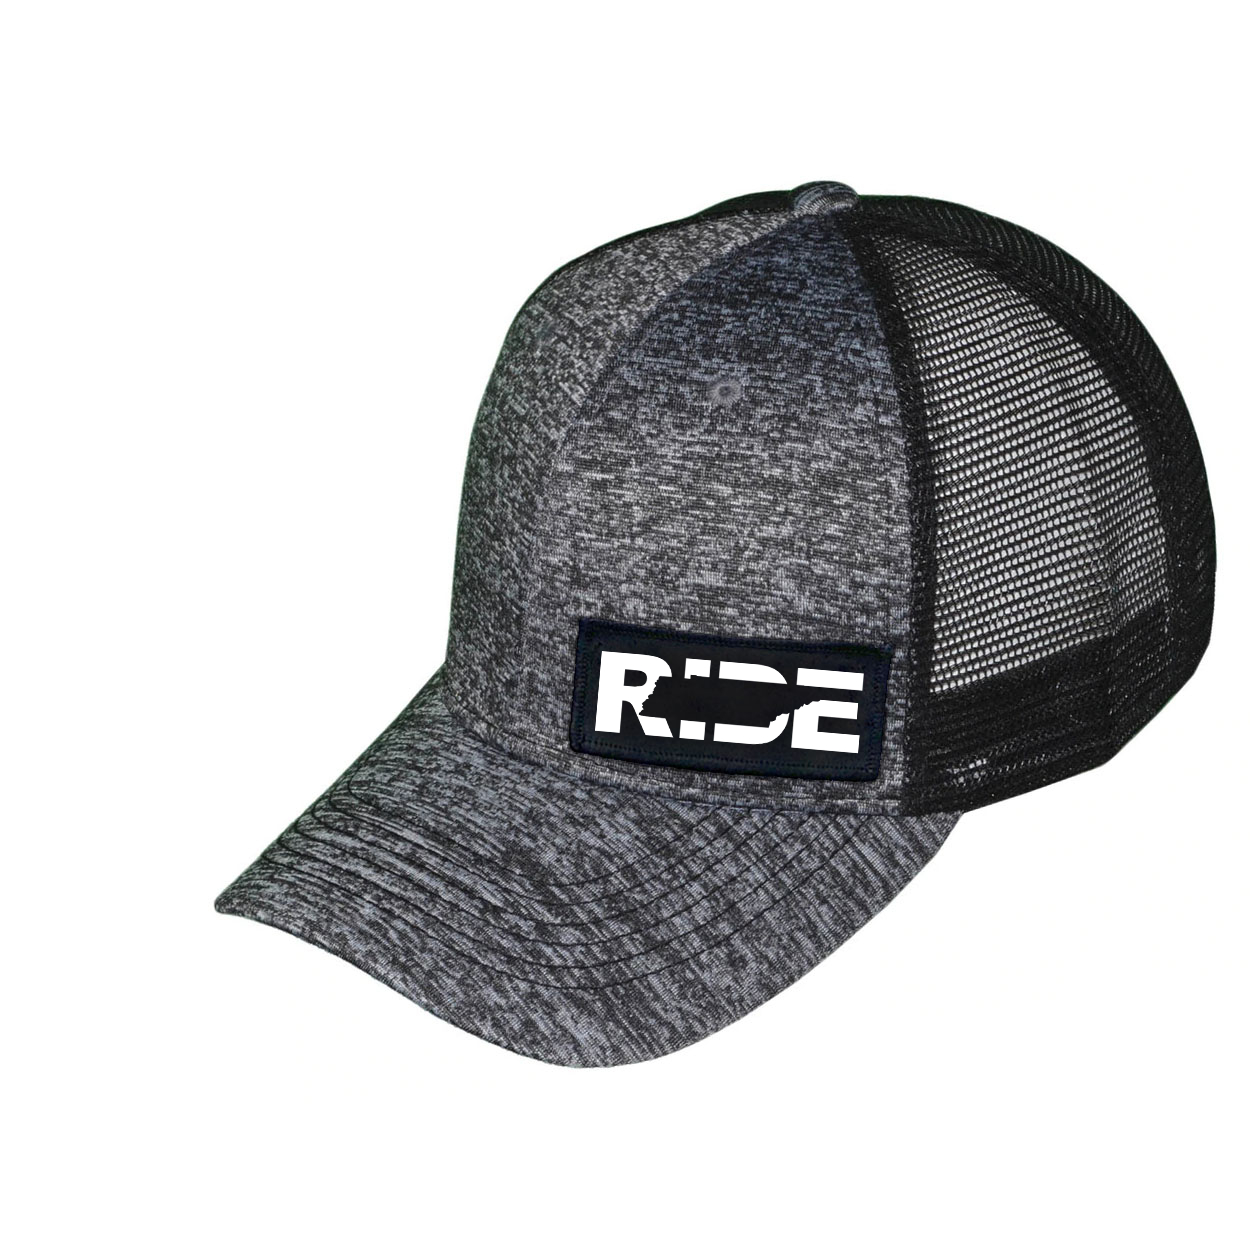 Ride Tennessee Night Out Woven Patch Melange Snapback Trucker Hat Gray/Black (White Logo)